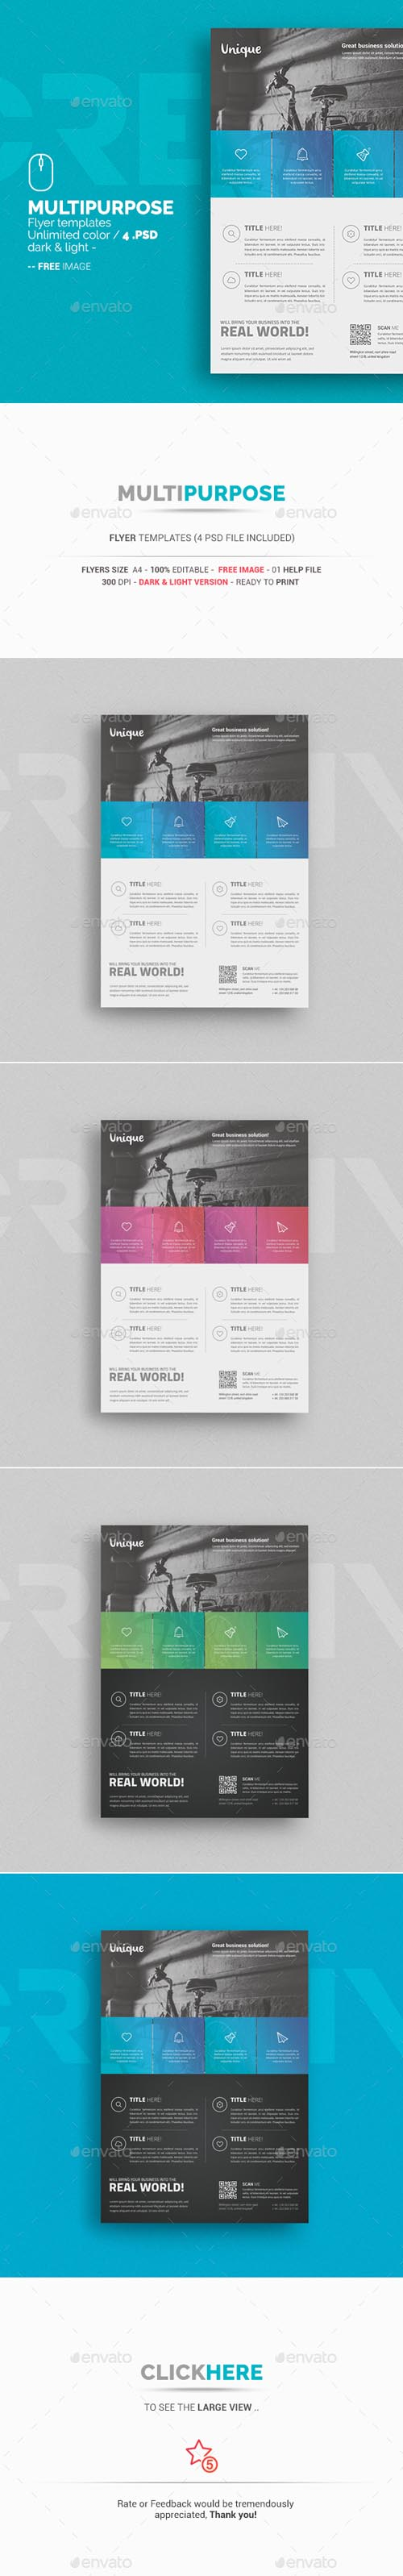 Multipurpose Business Flyer Templates 13671347